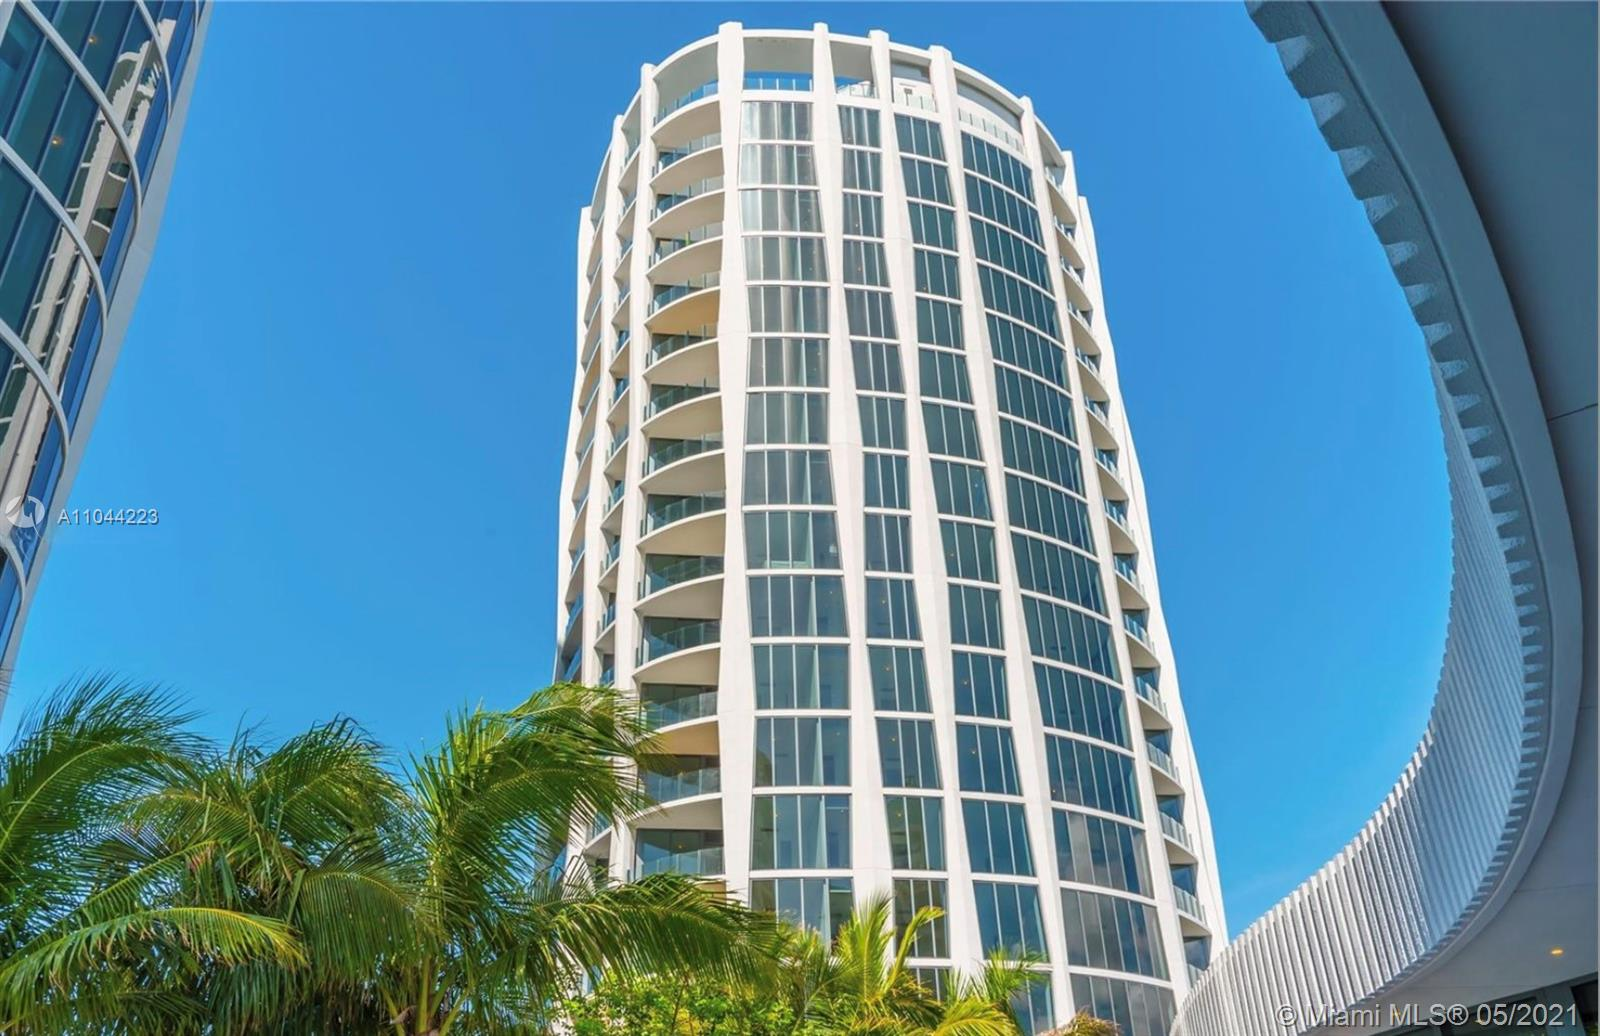 Rarely available, 01 corner unit on the 18th floor in the Park Grove Club Residences.  Light & bright open floor plan with 10ft, floor to ceiling, sliding glass doors that lead to oversized private terrace over looking Biscayne Bay.  Chef's kitchen with Calcutta Gold marble, Italkraft custom cabinets, Wolf & Sub zero appliances. Roof top pool, plus 5 acres of additional luxury amenities including a 550 ft, resort like pool, gym, spa, valet, 24 hr concierge, screening room, children's play area and much more.  Walking distance to the shops & restaurants of Coconut Grove.